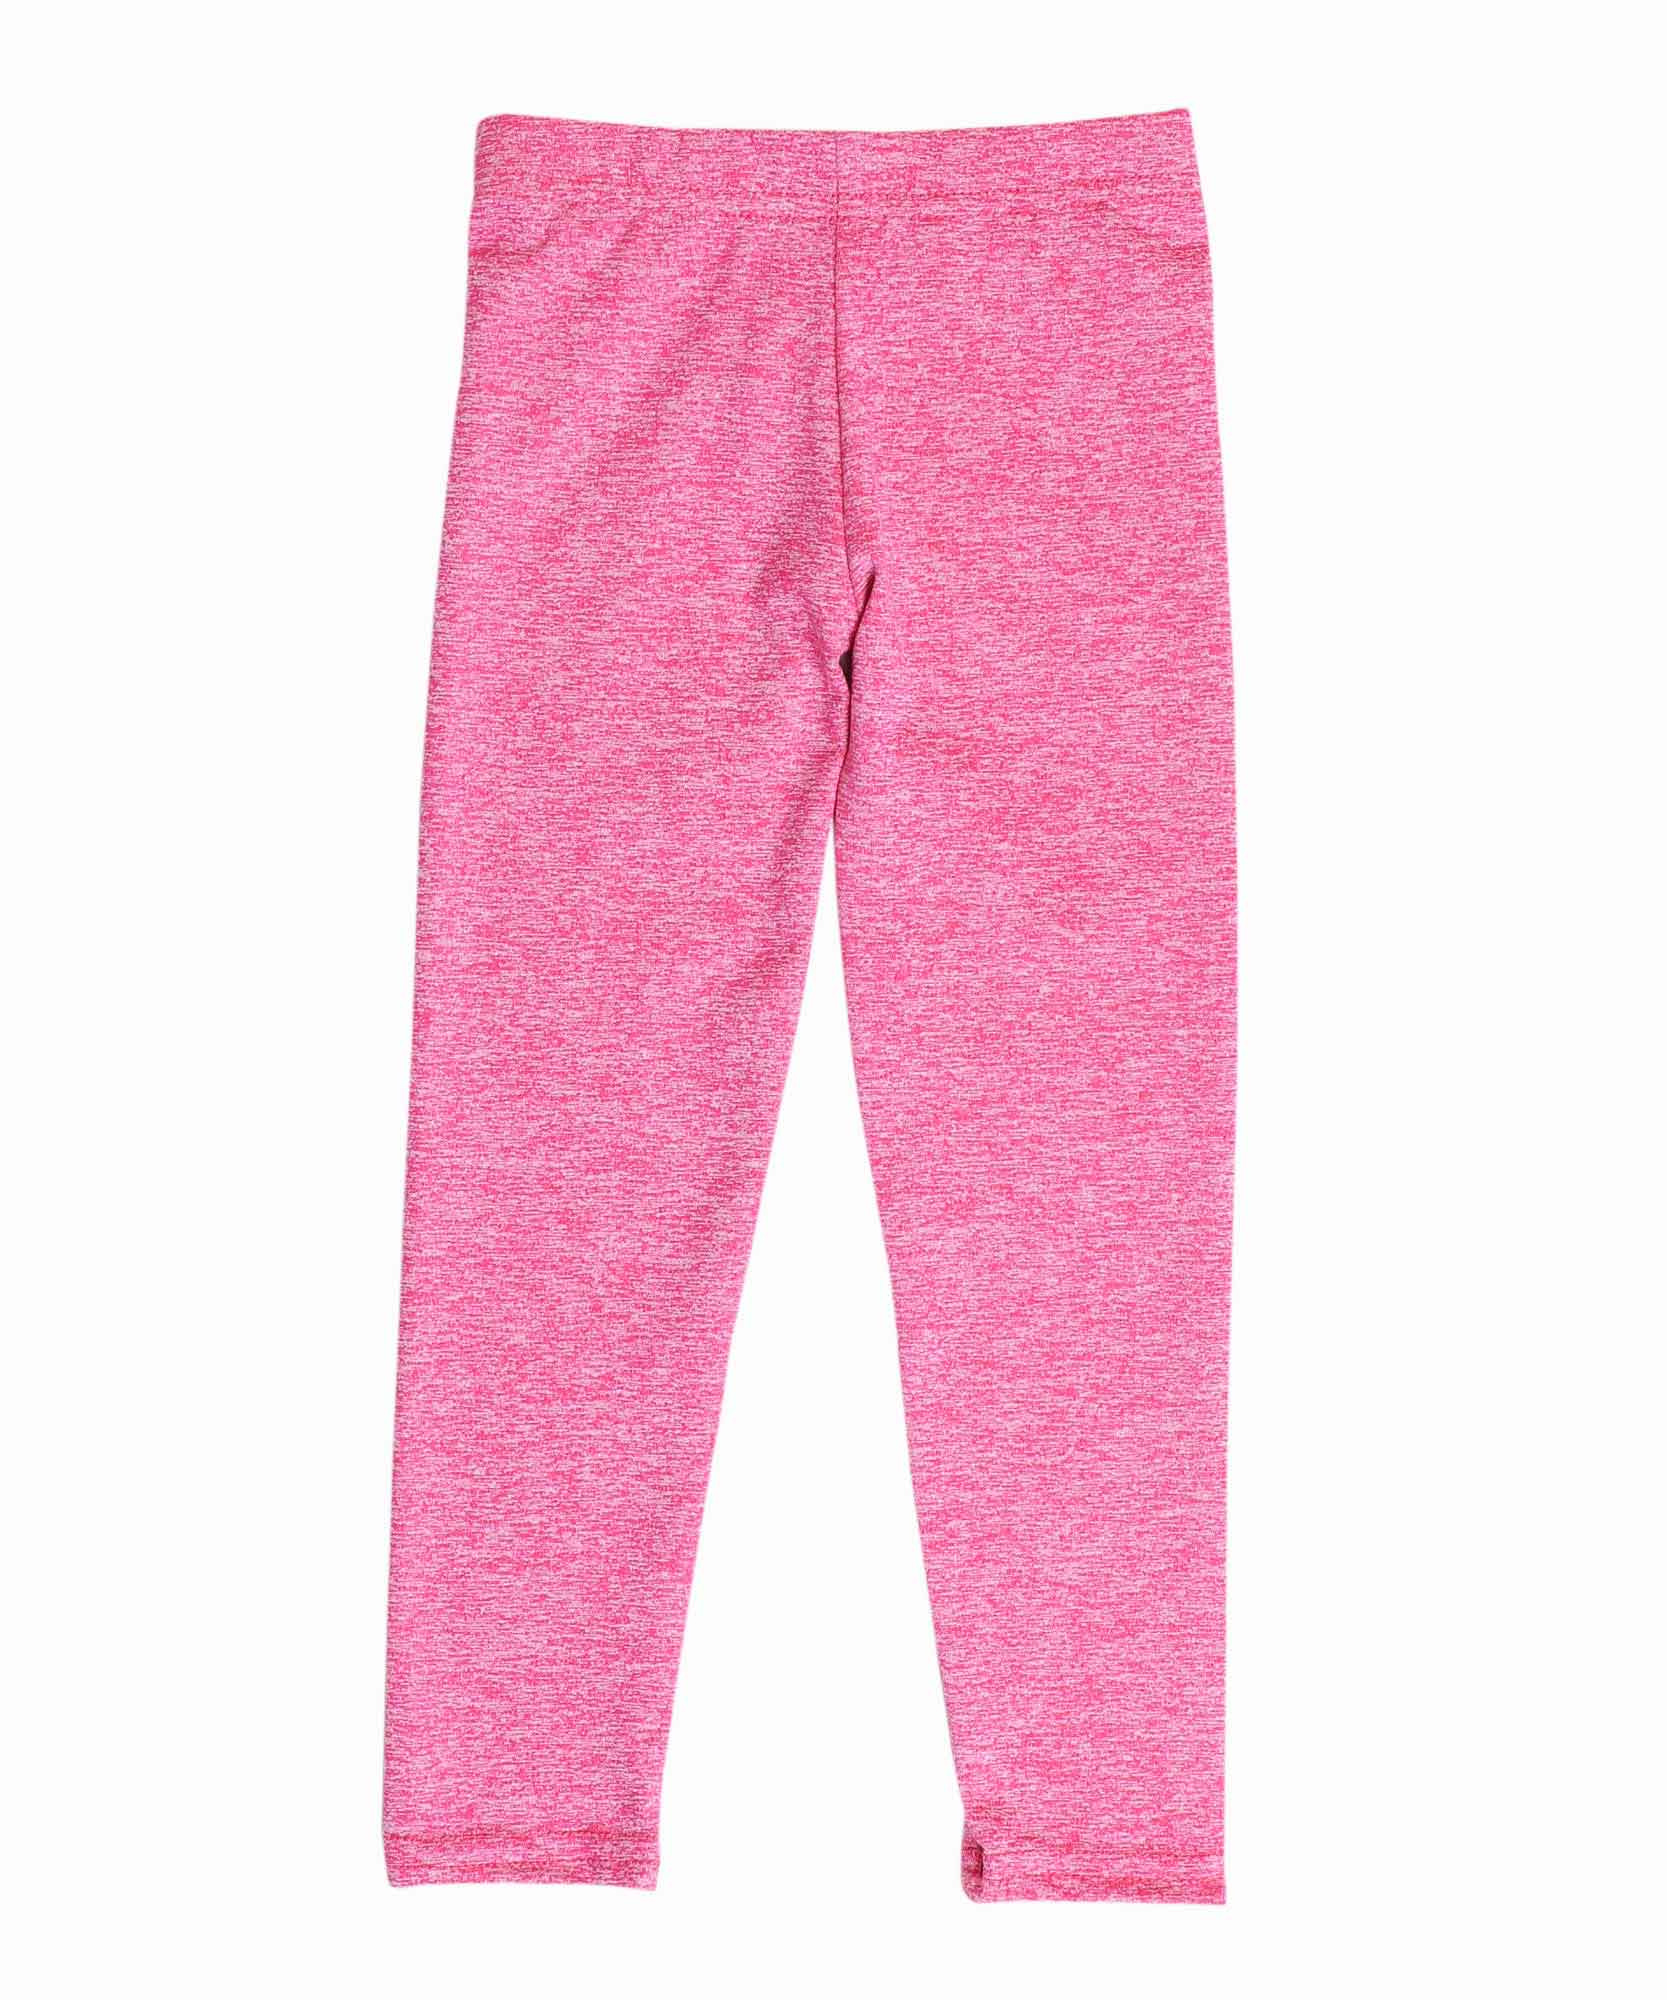 Dori Creations - Heathered Pink Leggings